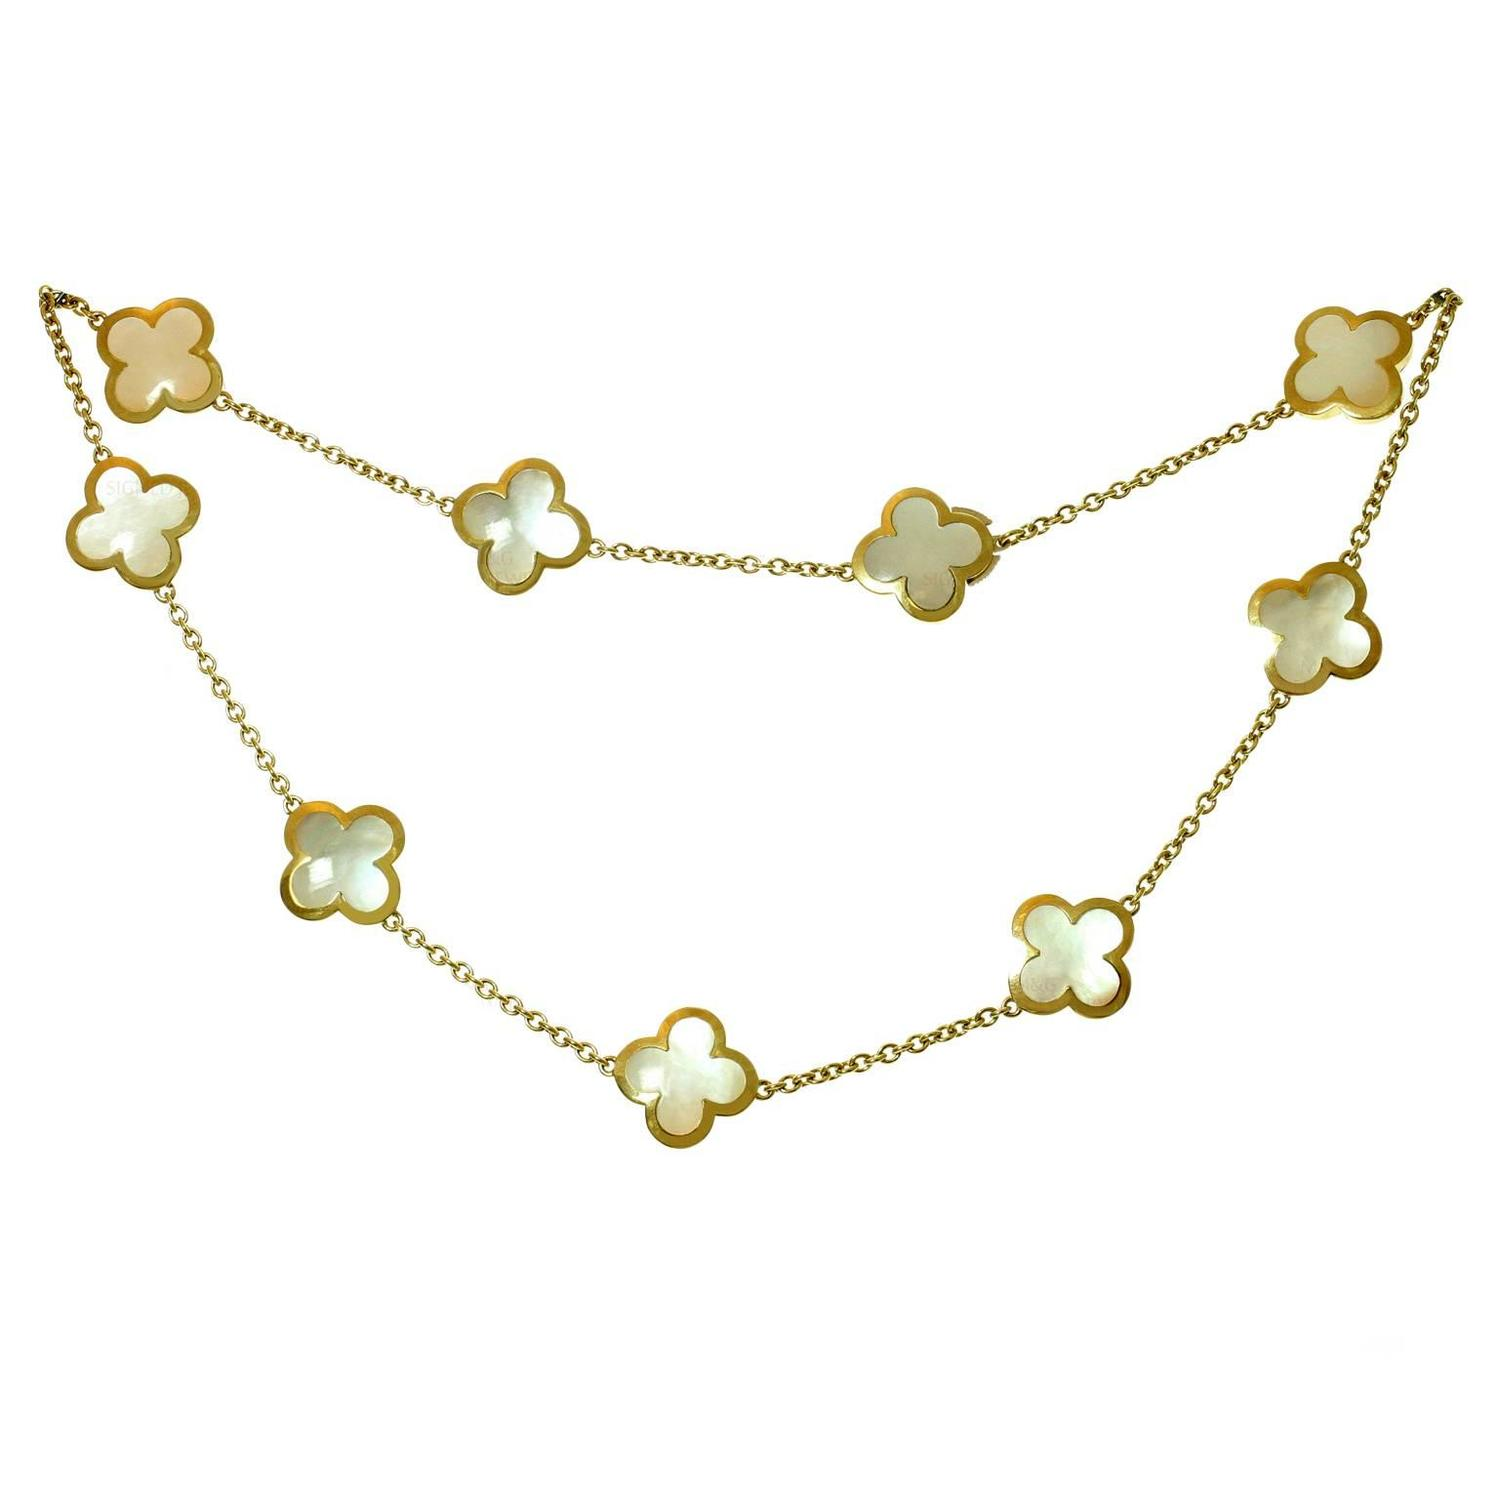 Van Cleef And Arpels Mother Of Pearl Necklace: Van Cleef And Arpels Pure Alhambra Mother-of-Pearl Gold 9